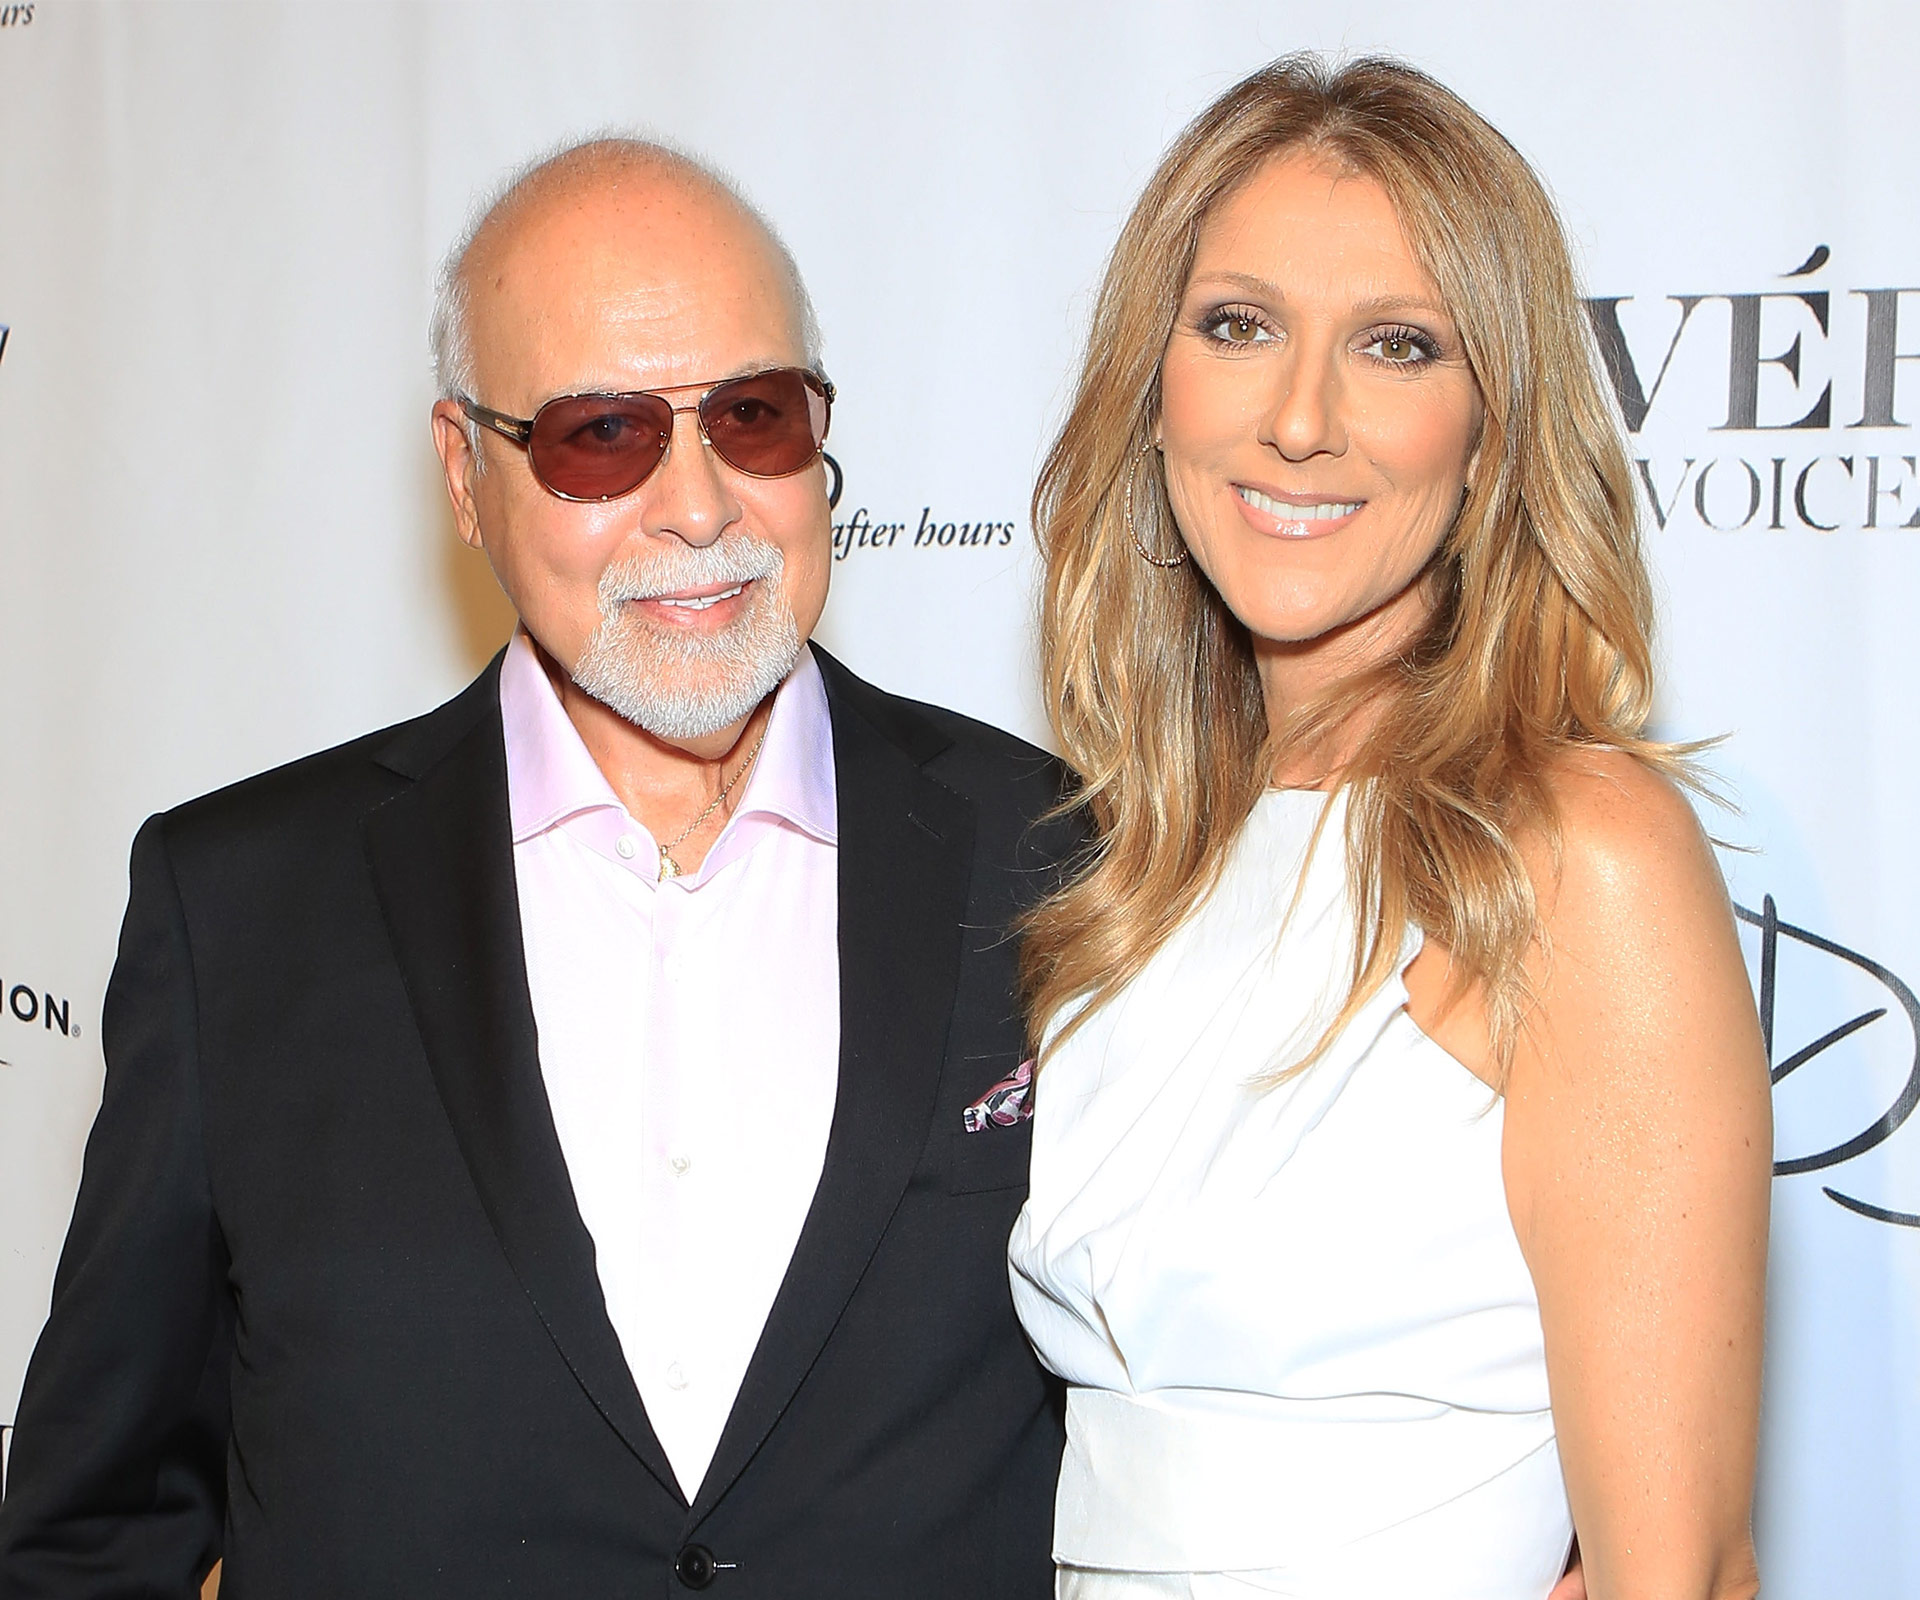 Celine and her husband Rene were married for 21 years before his death